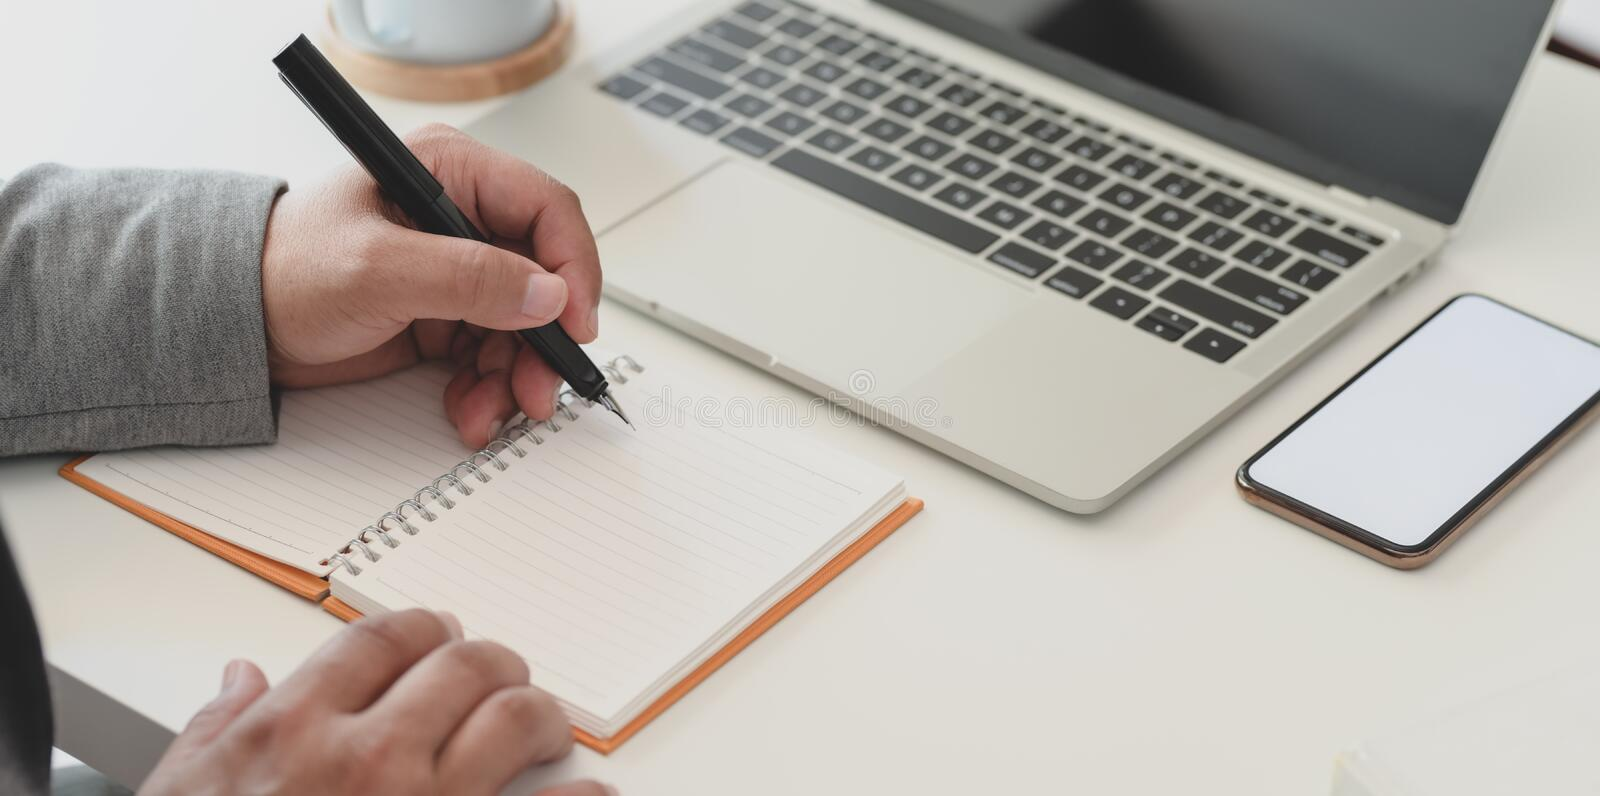 Cropped shot of businessman working his project while writing ideas on notebook stock image